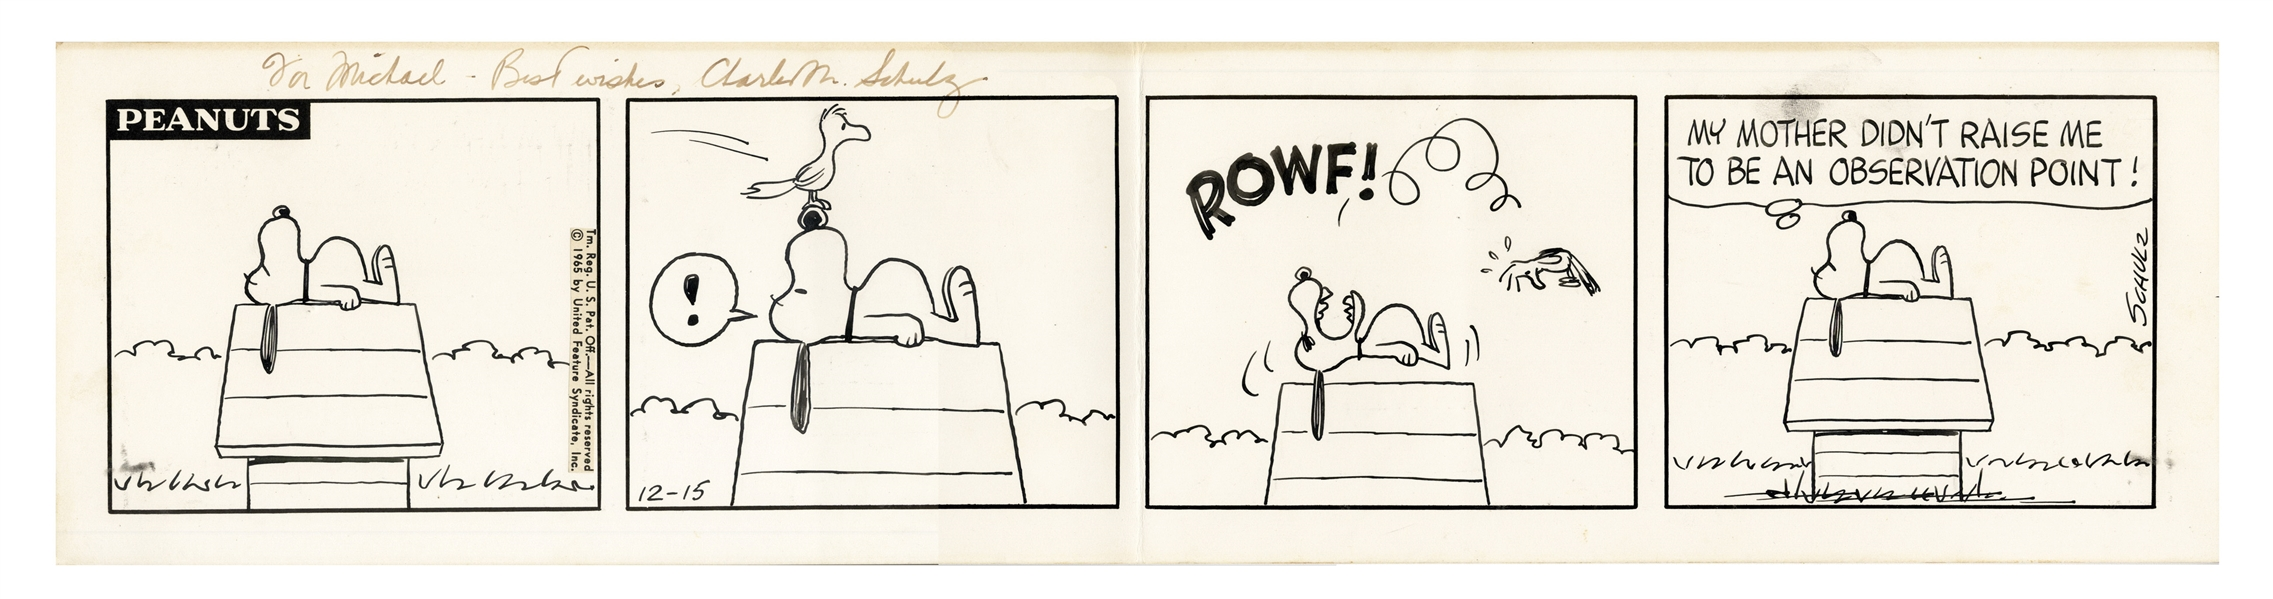 Charles Schulz Hand-Drawn ''Peanuts'' Comic Strip From 1965 -- In This Very Cute Strip, Snoopy Bares Teeth at a Seagull Who Lands on His Nose